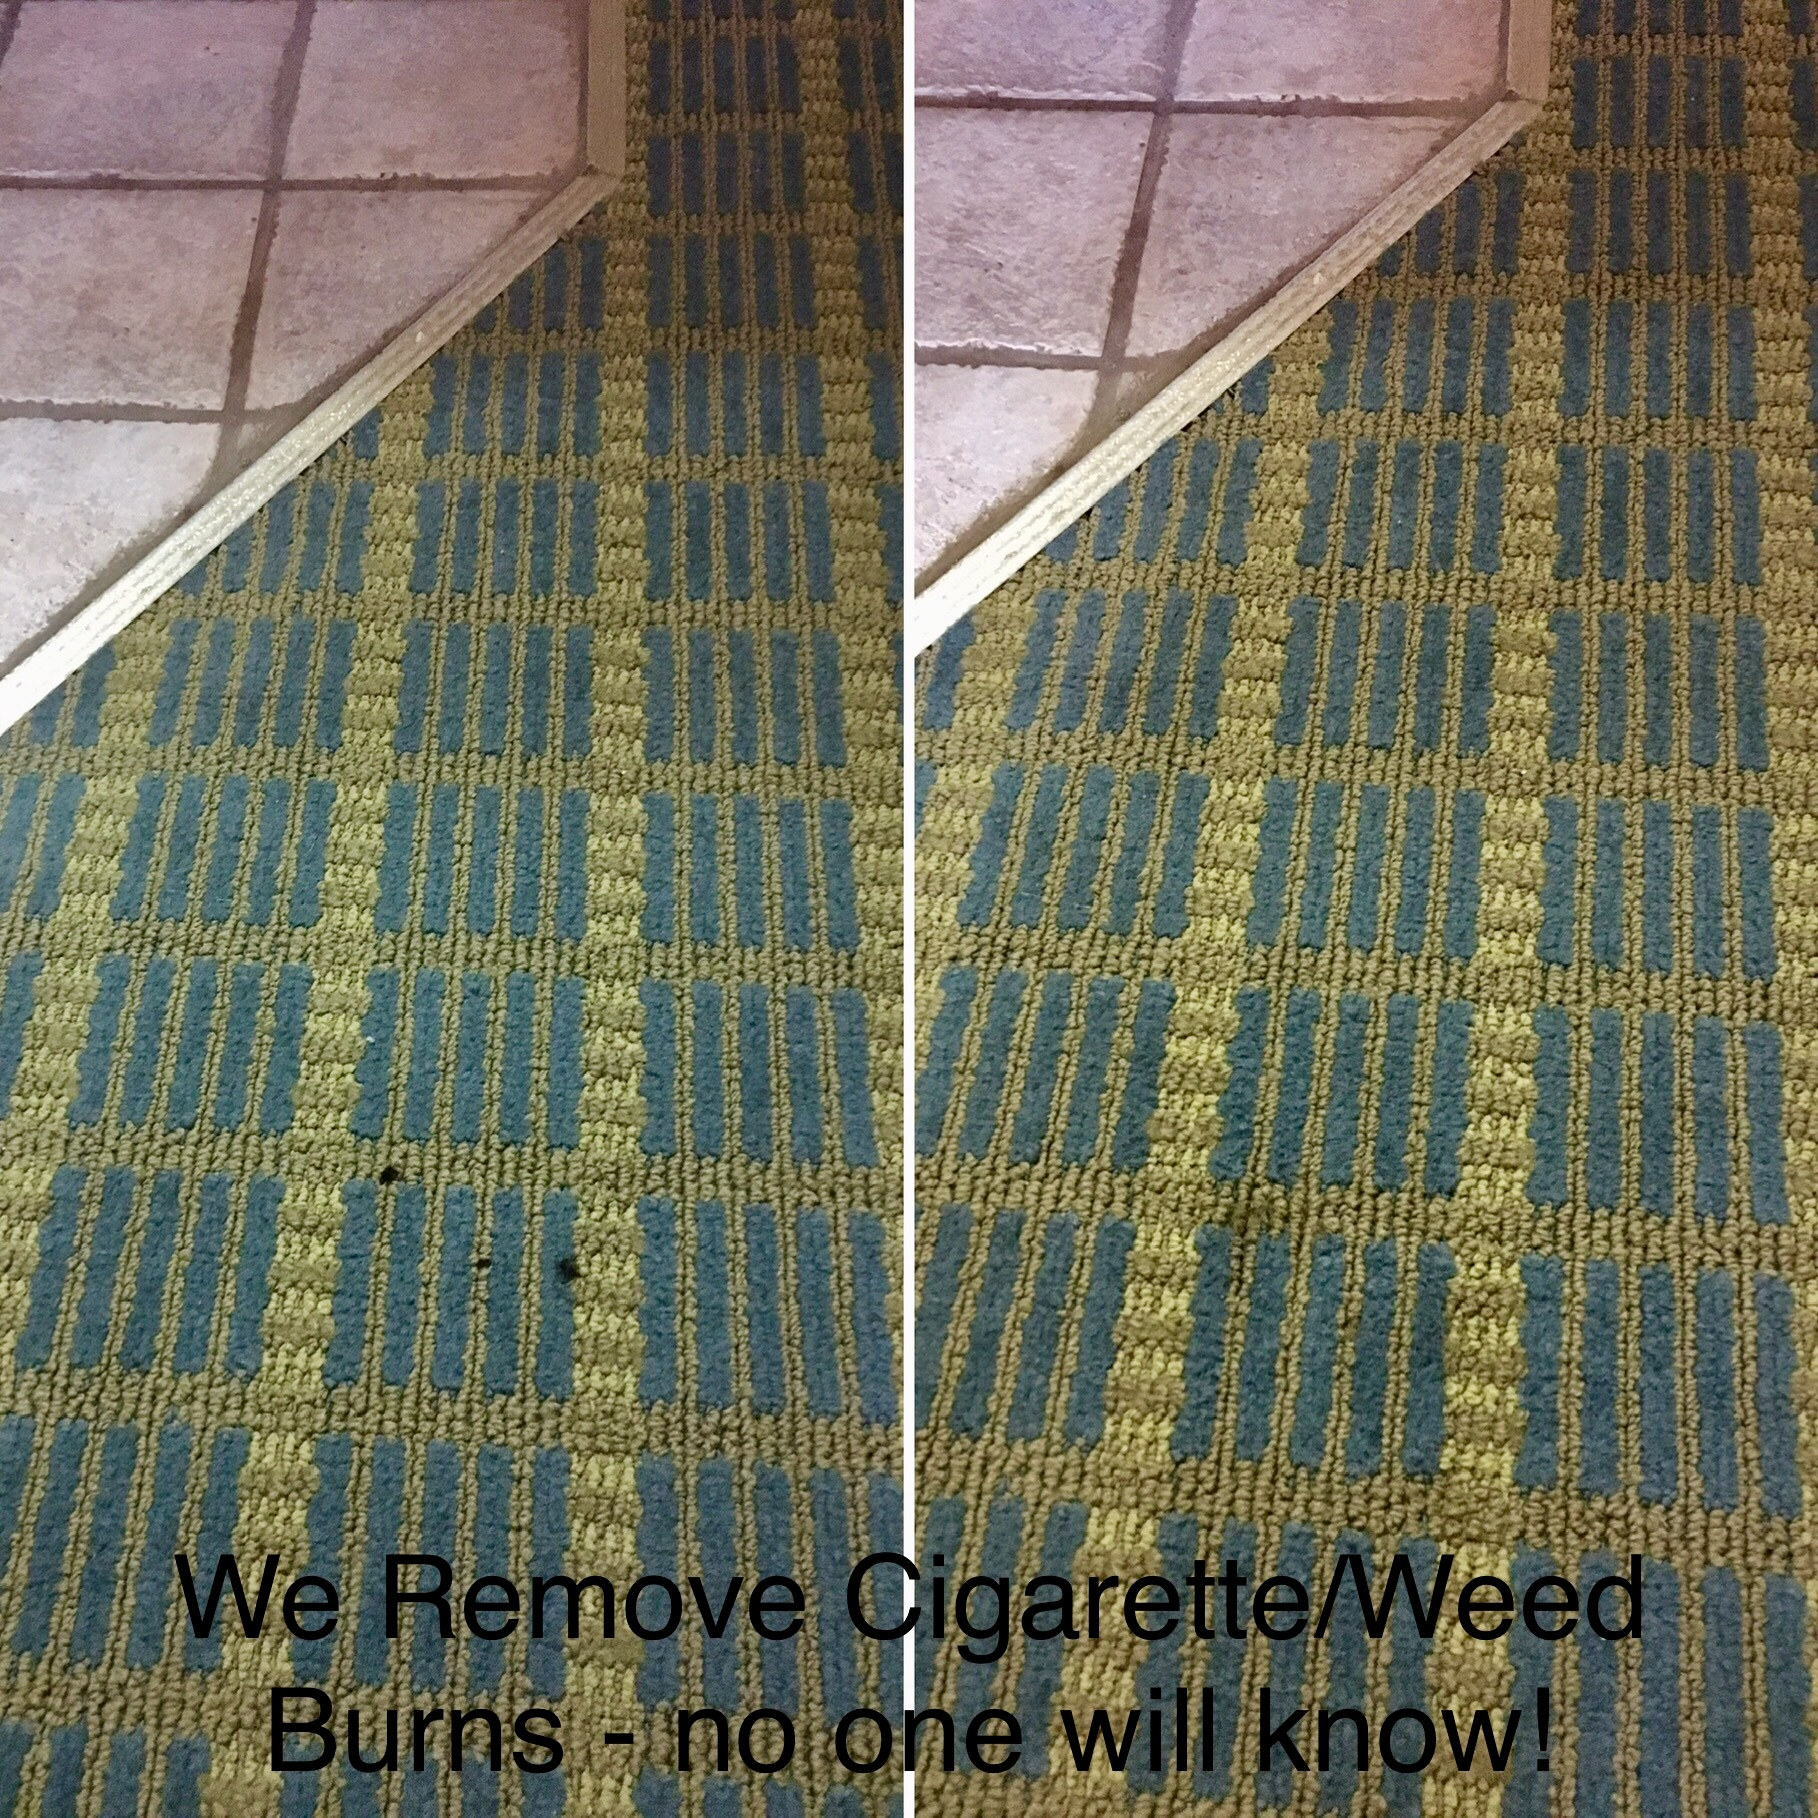 Cigarette burns in carpet